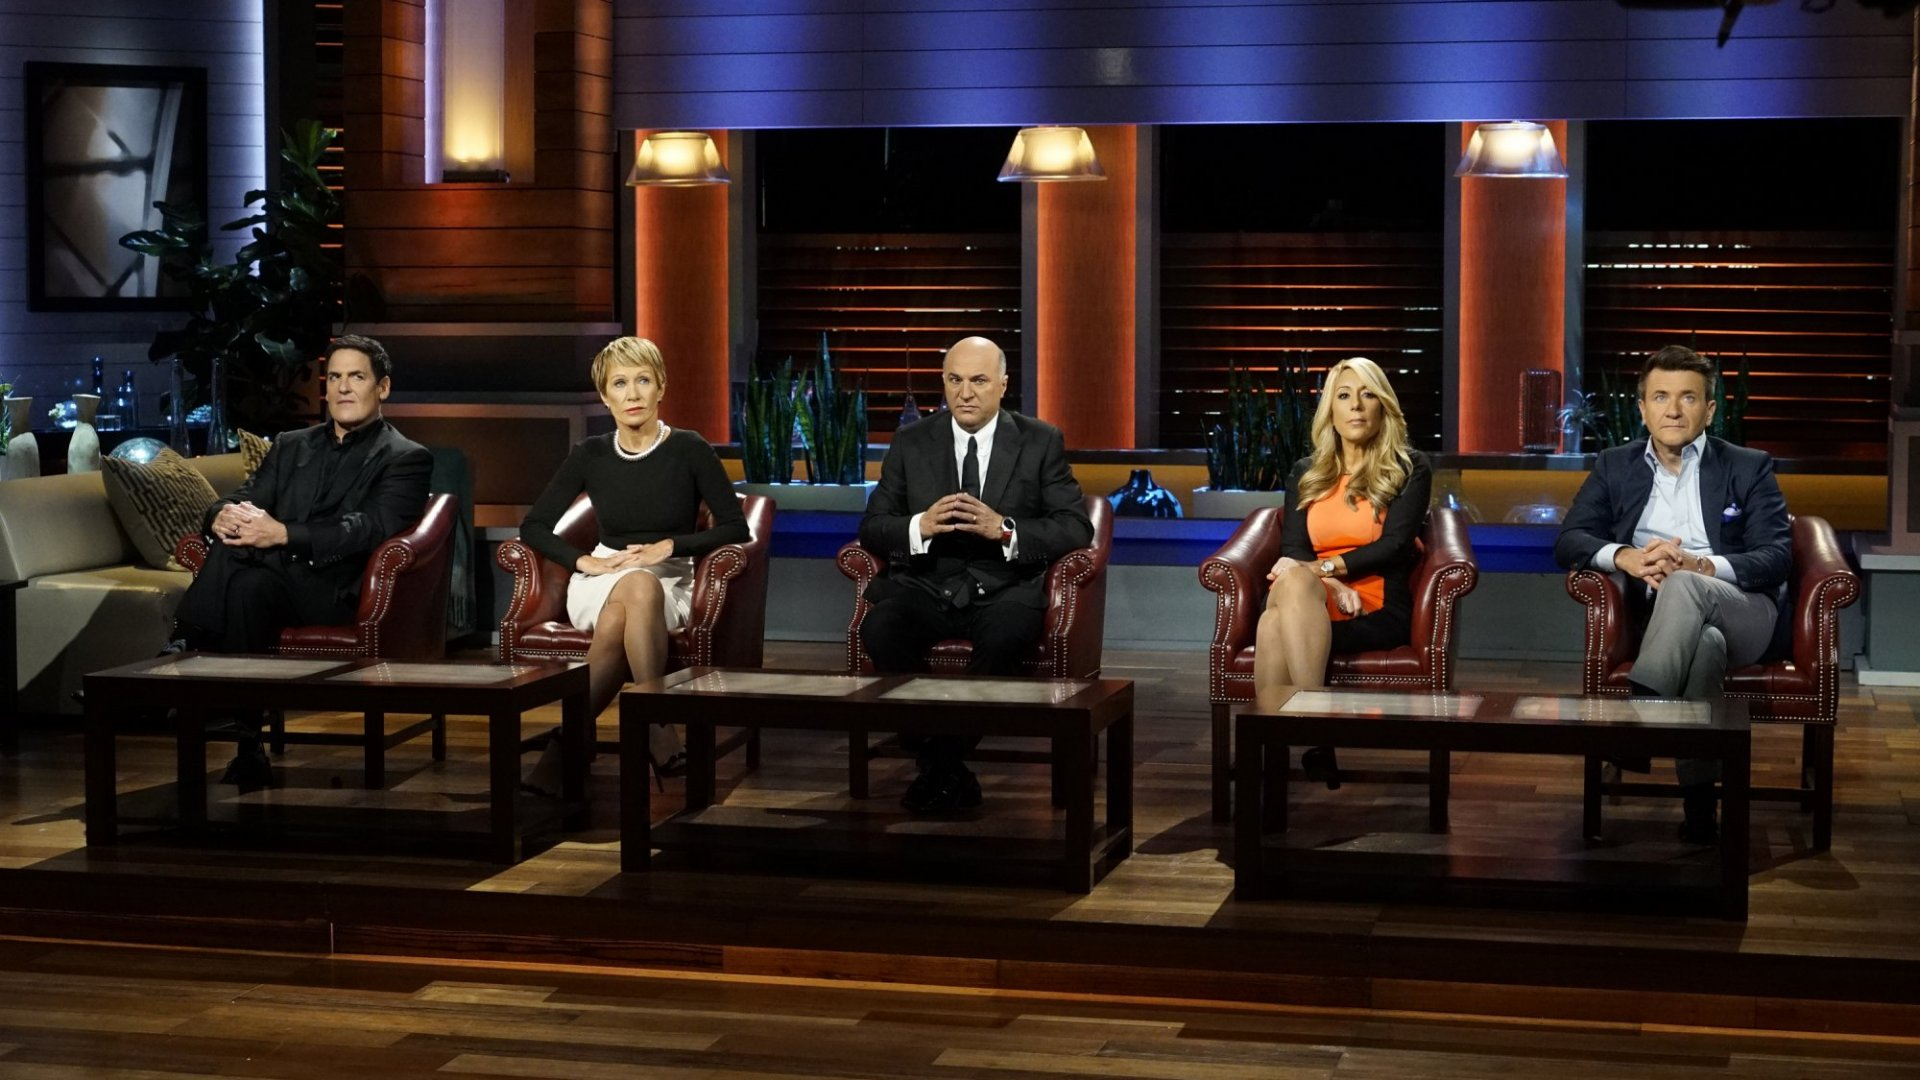 How Much Is a 'Shark Tank' Appearance Worth? About $7 Million for This Entrepreneur